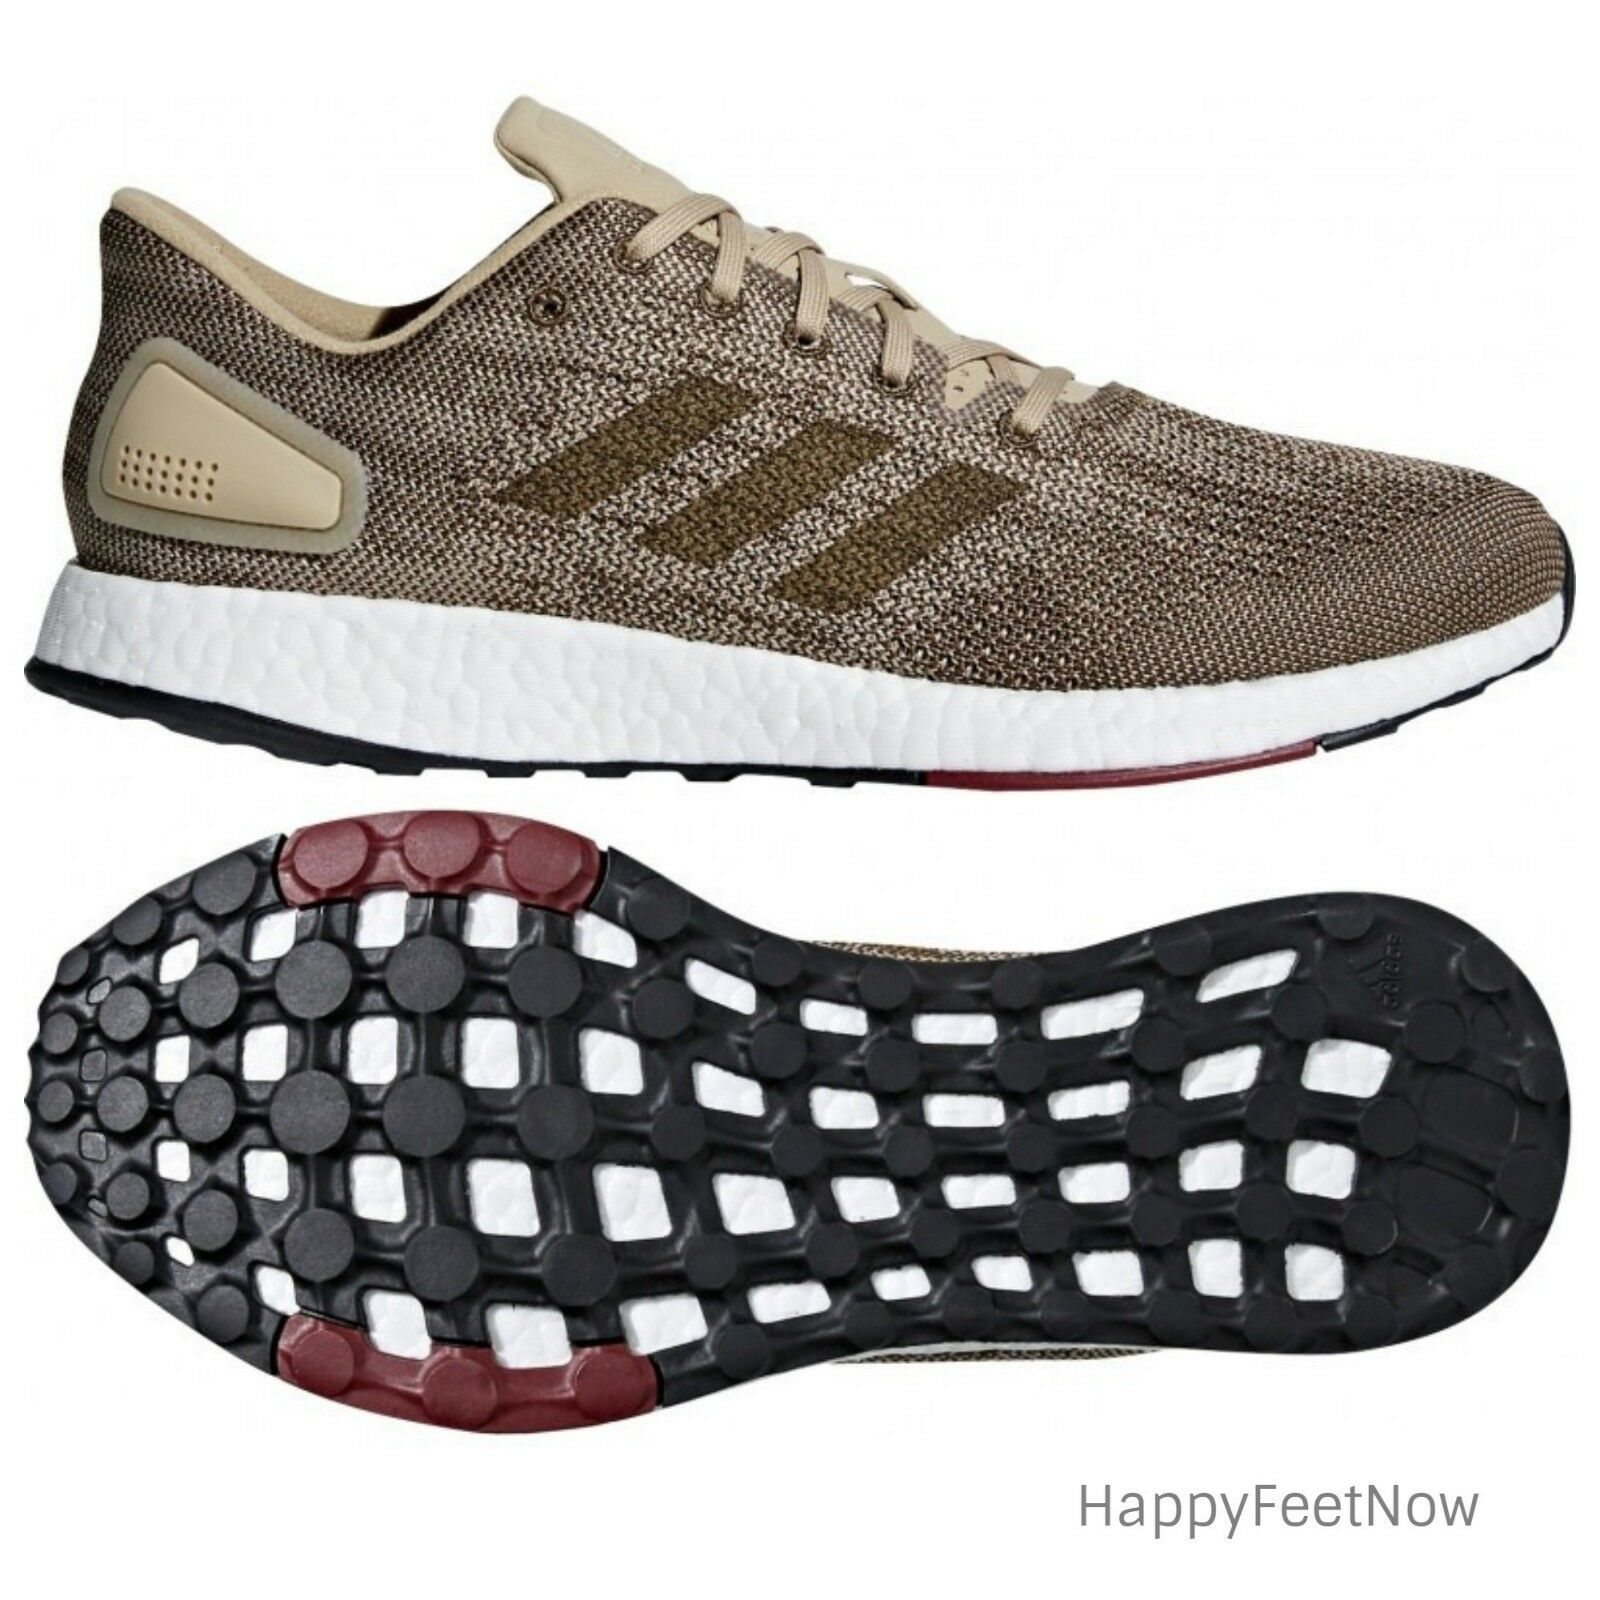 0afafa822165 ADIDAS PUREBOOST DPR RUNNING SHOES MEN S SIZE US 11 11 11 KHAKI BROWN  BB6292 3f1a44